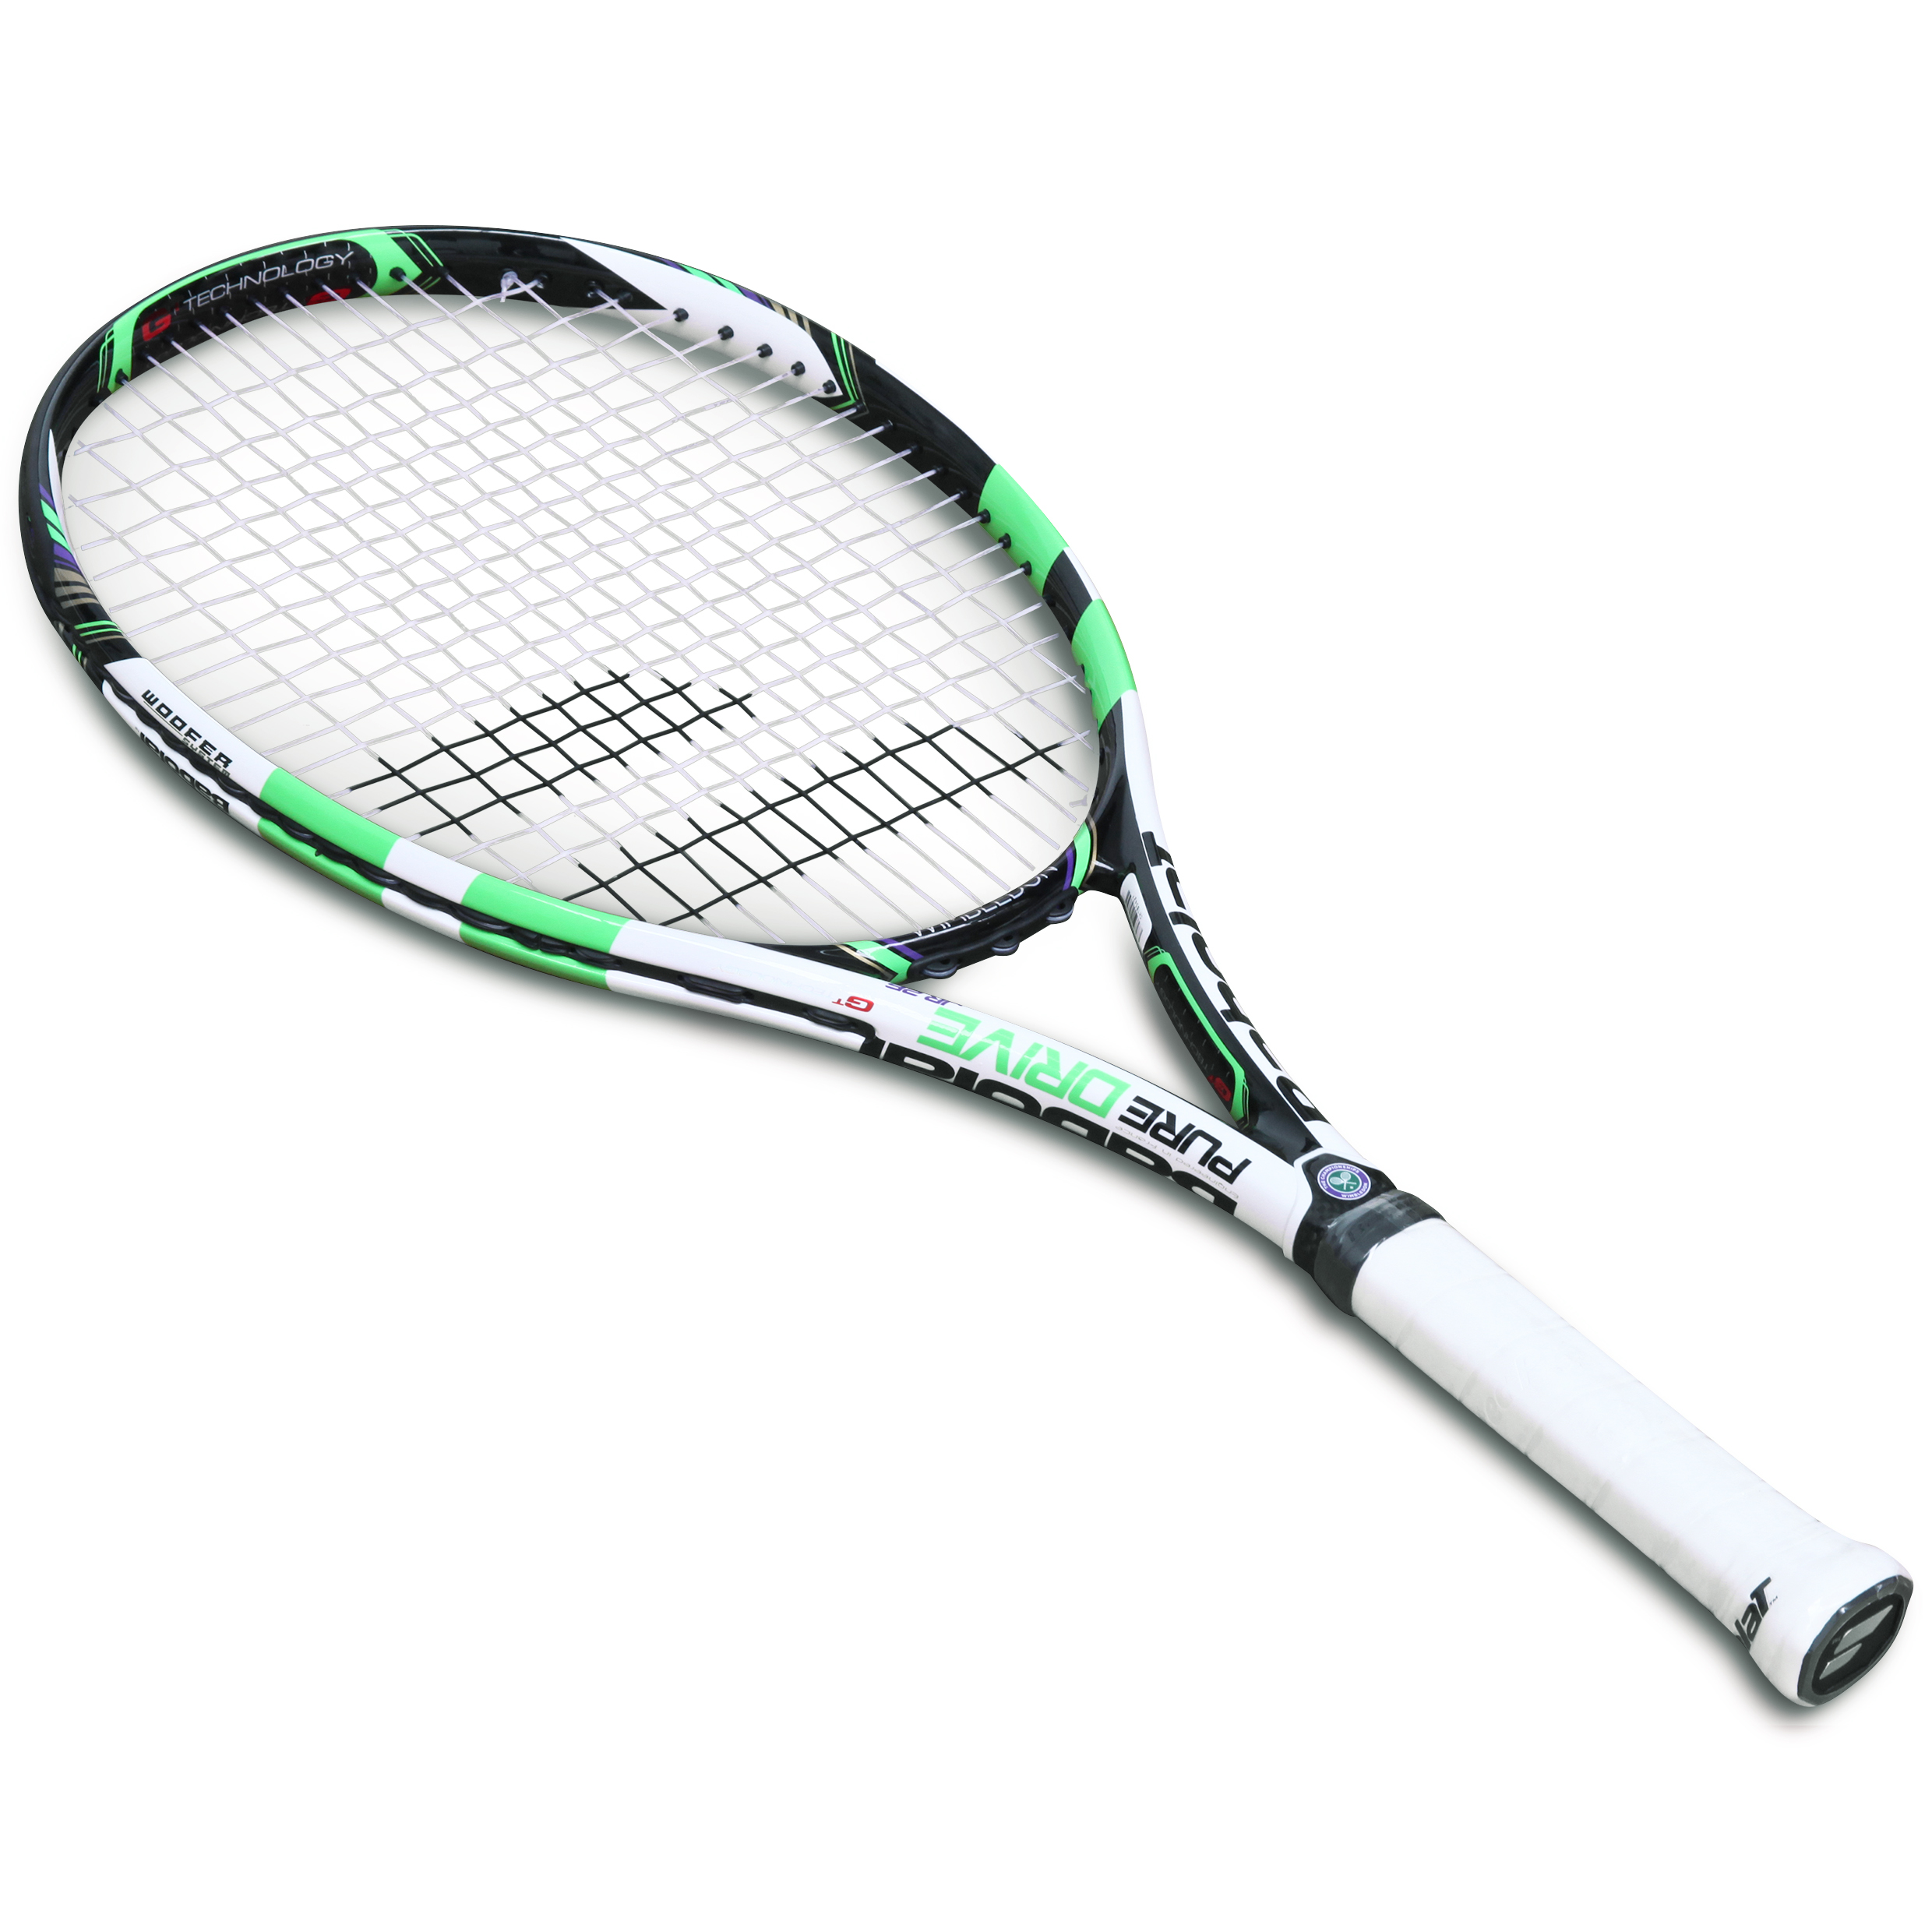 Wimbledon Pure Drive Junior 26 Racket Green